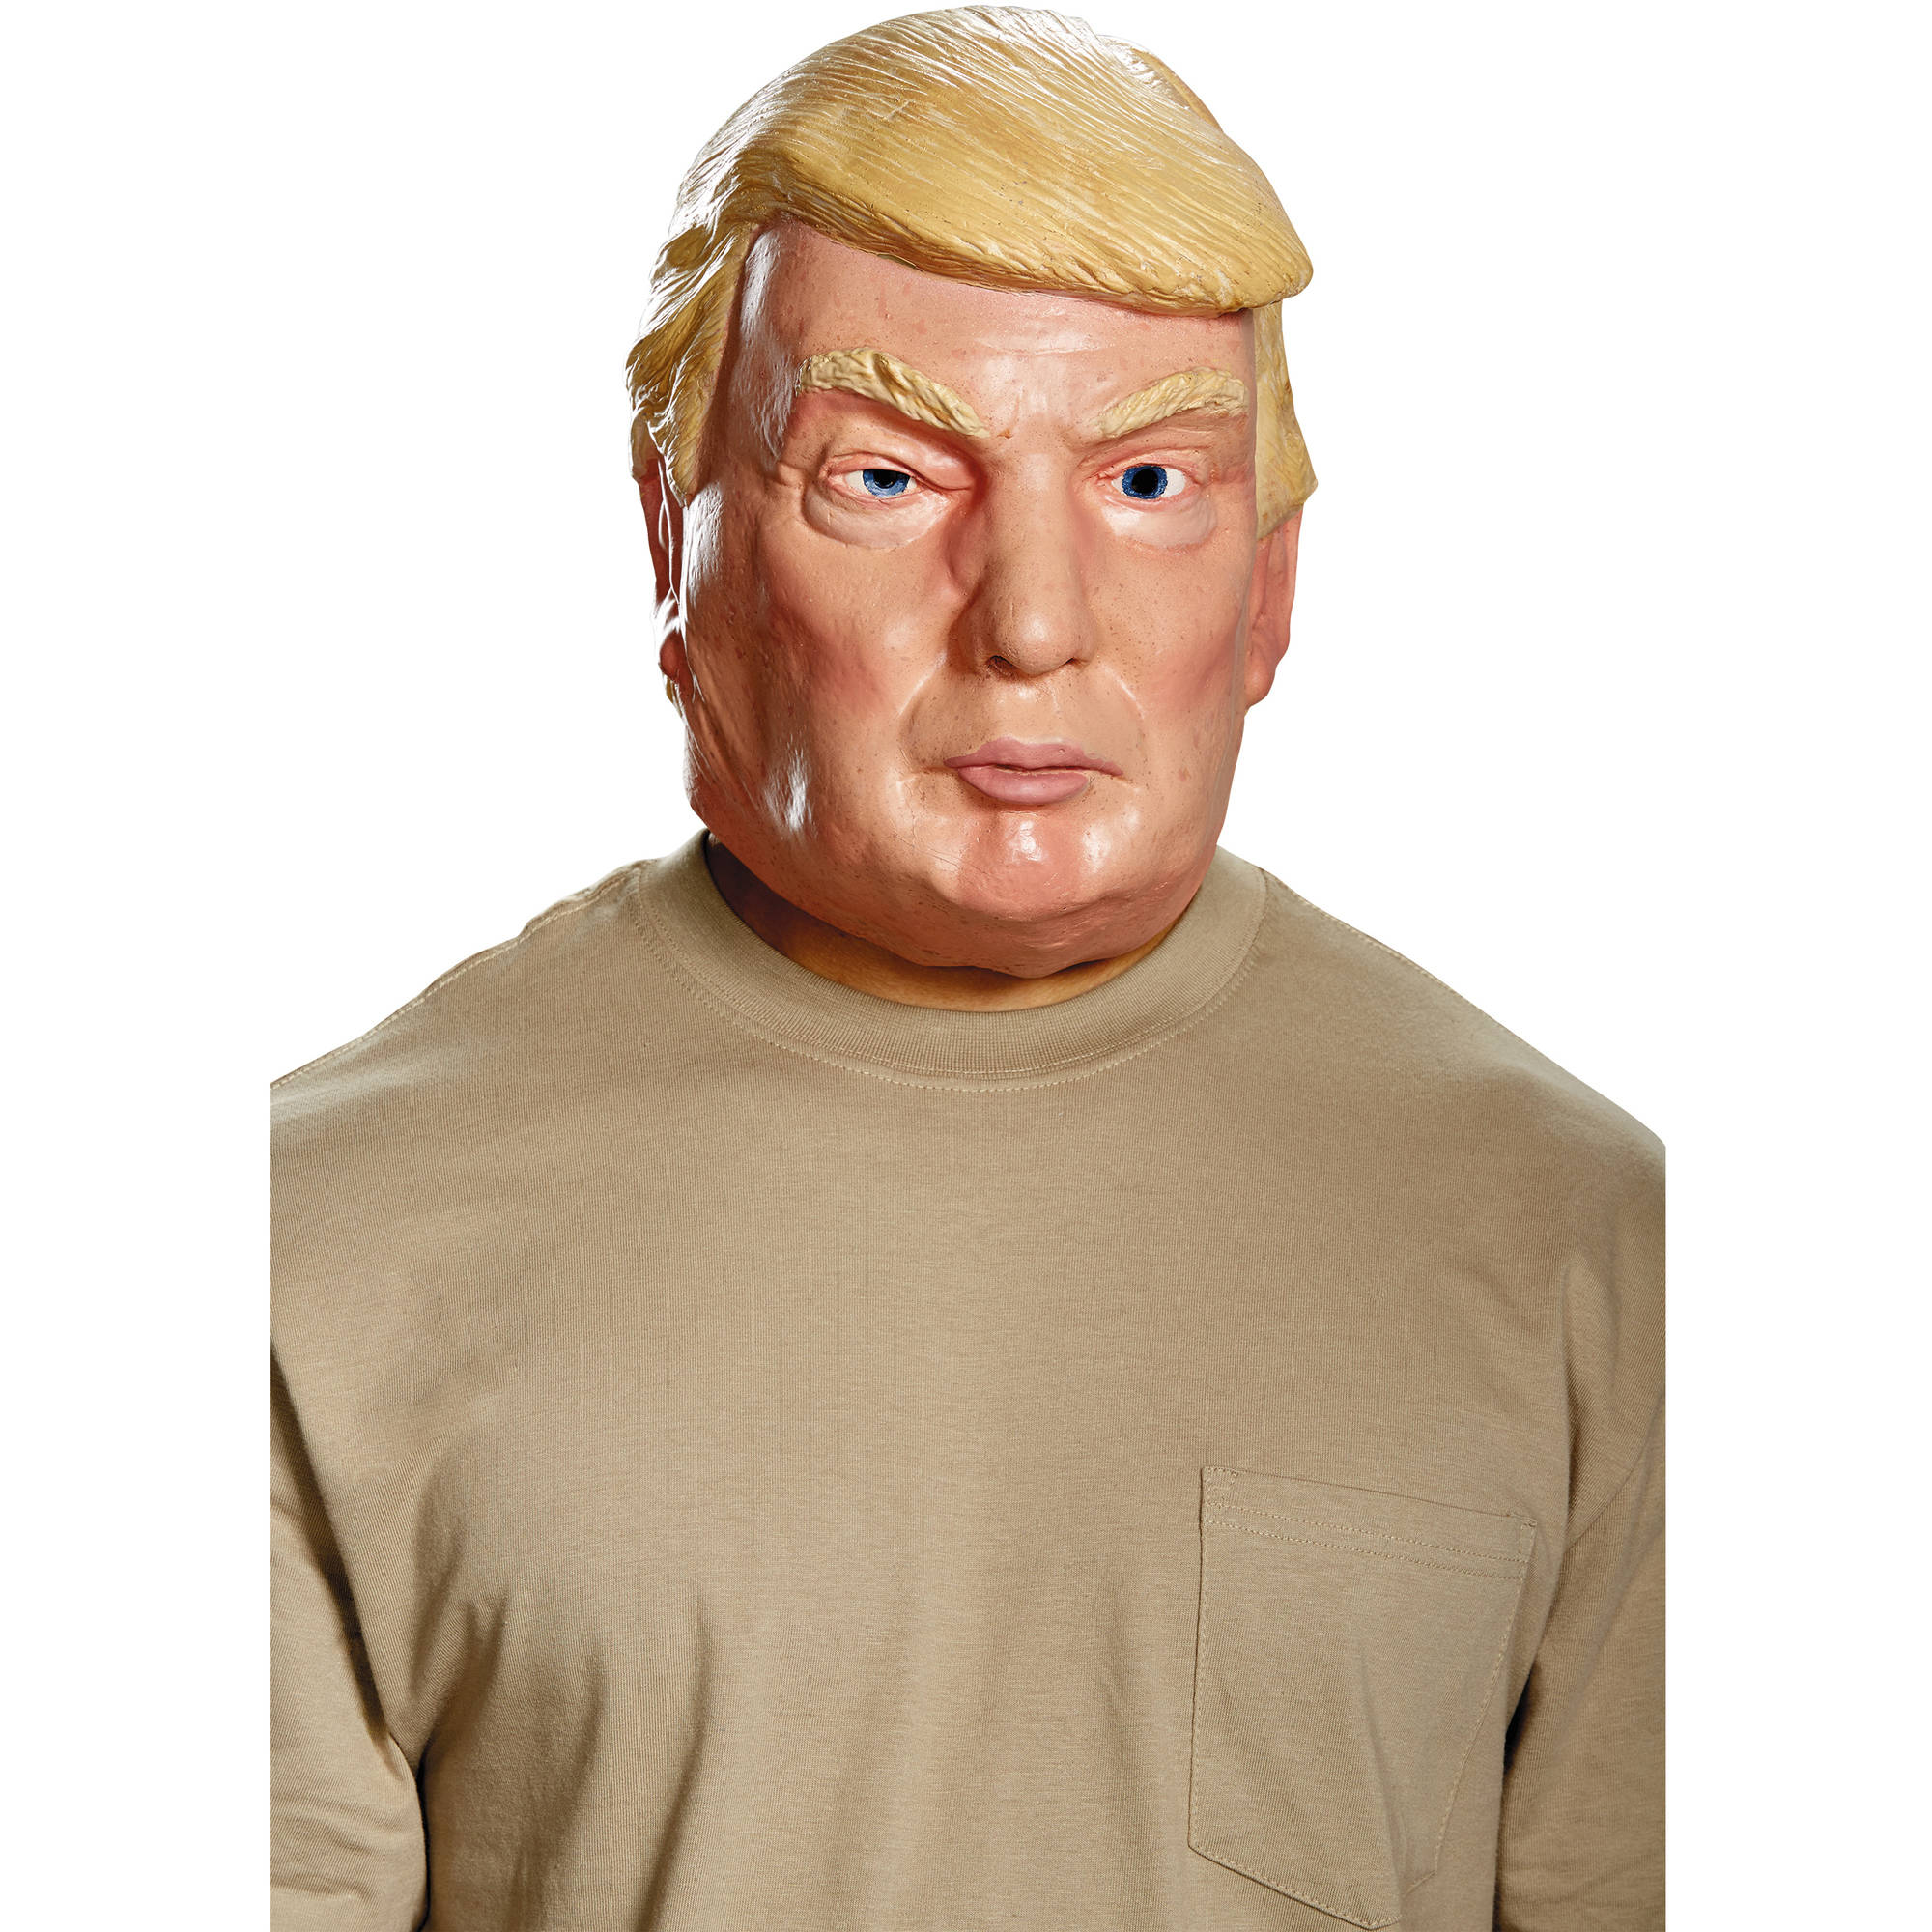 Donald Trump the Republican Presidential Candidate Deluxe Mask Costume Accessory